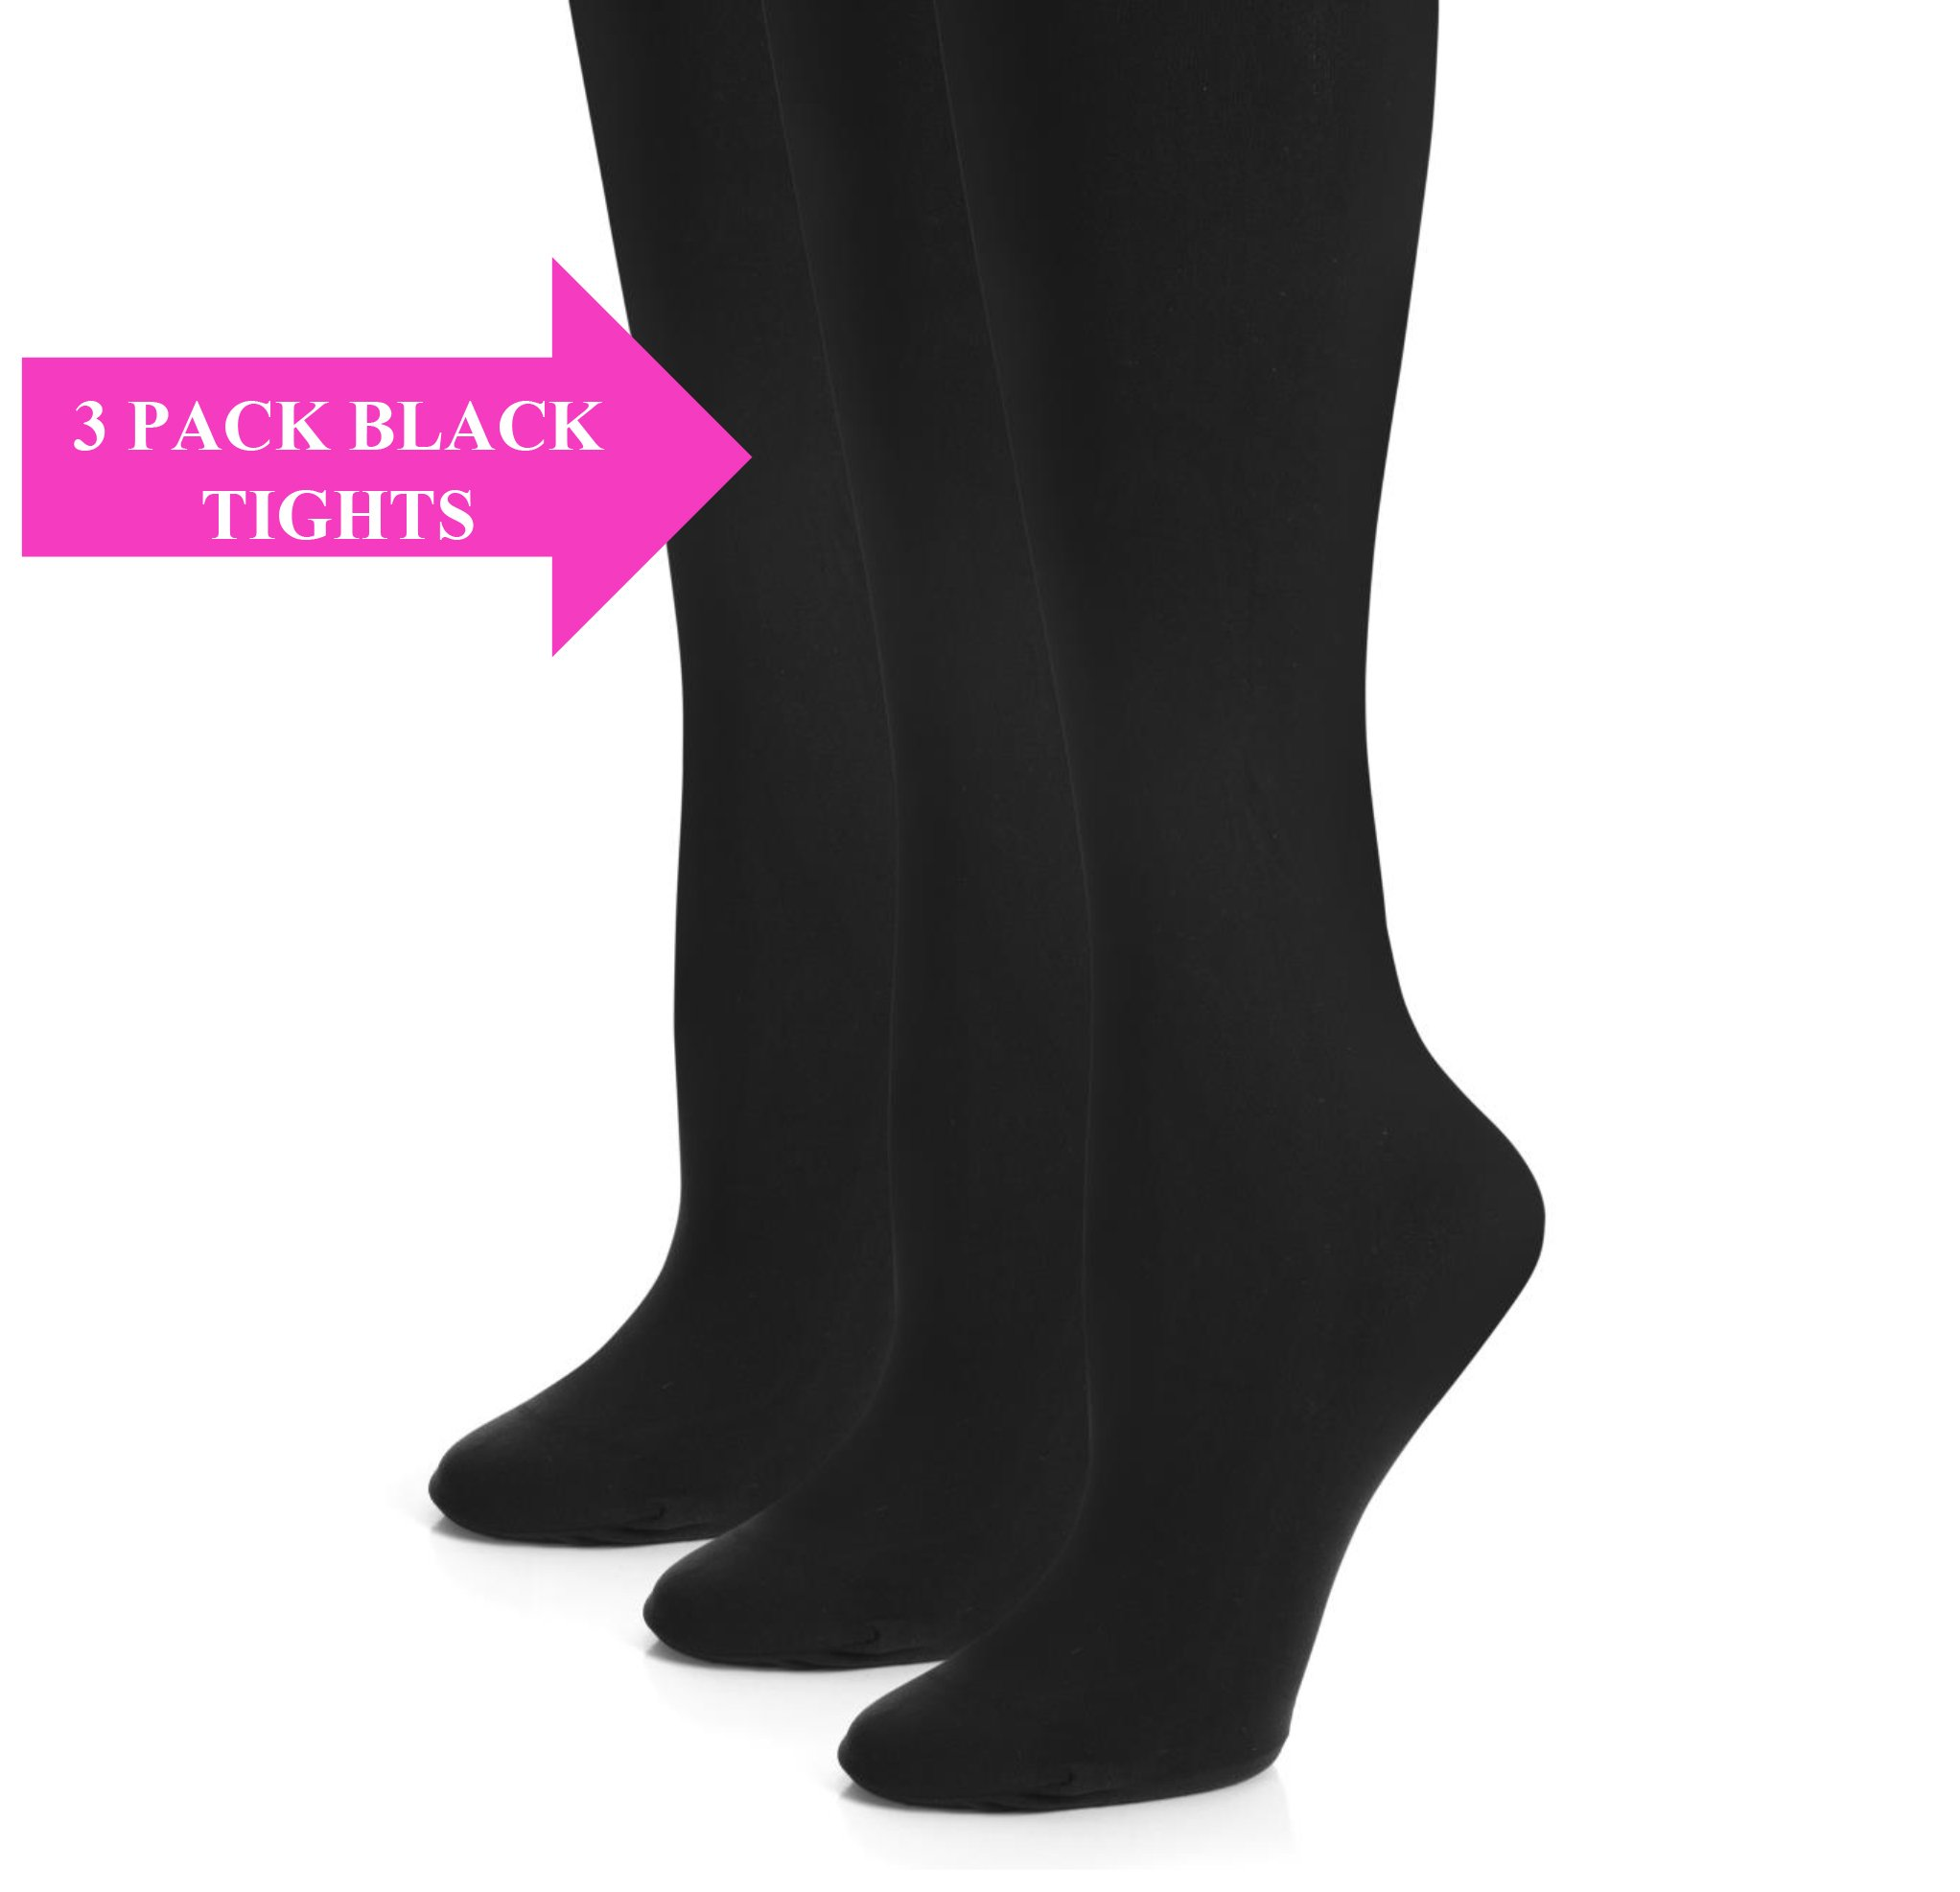 Girls Black Tights - Kids Opaque Tights - 3 Pack Microfiber Stockings - School and Uniform Tights - by Topfit (Black, 3pk, size B)